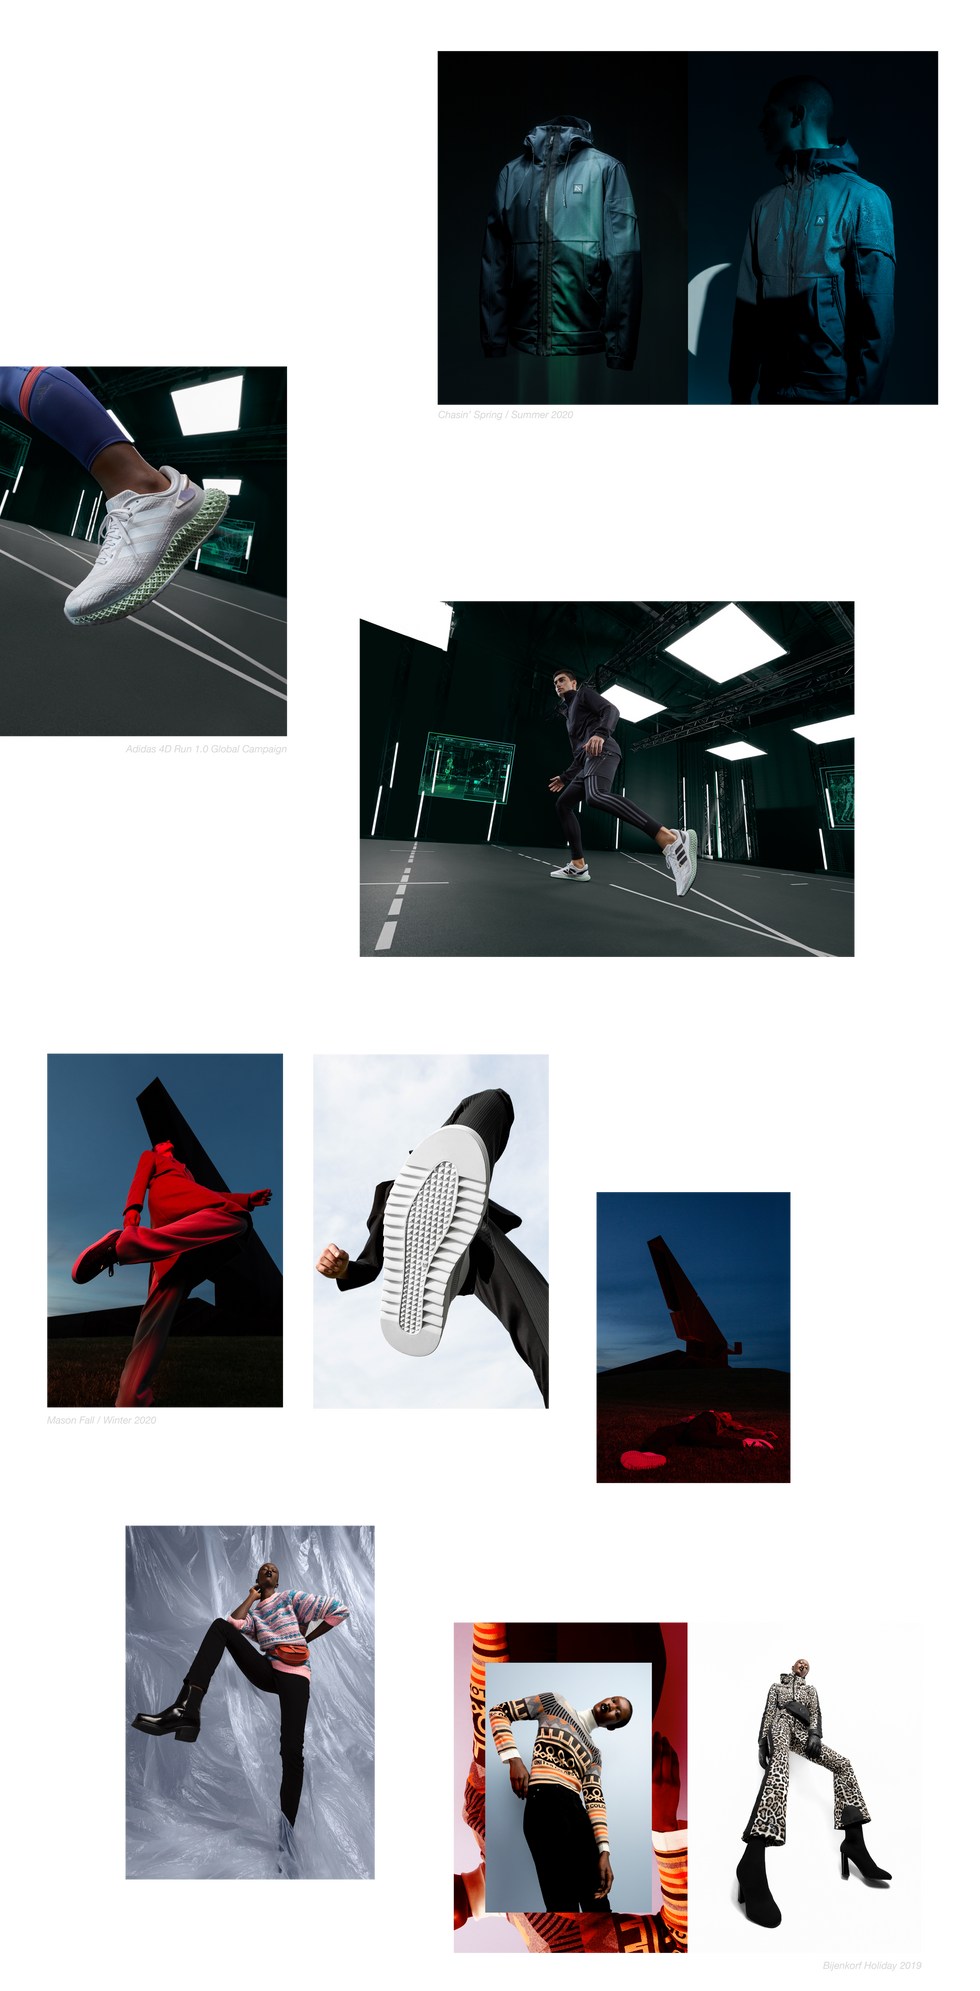 photography 1-1fs-2.png